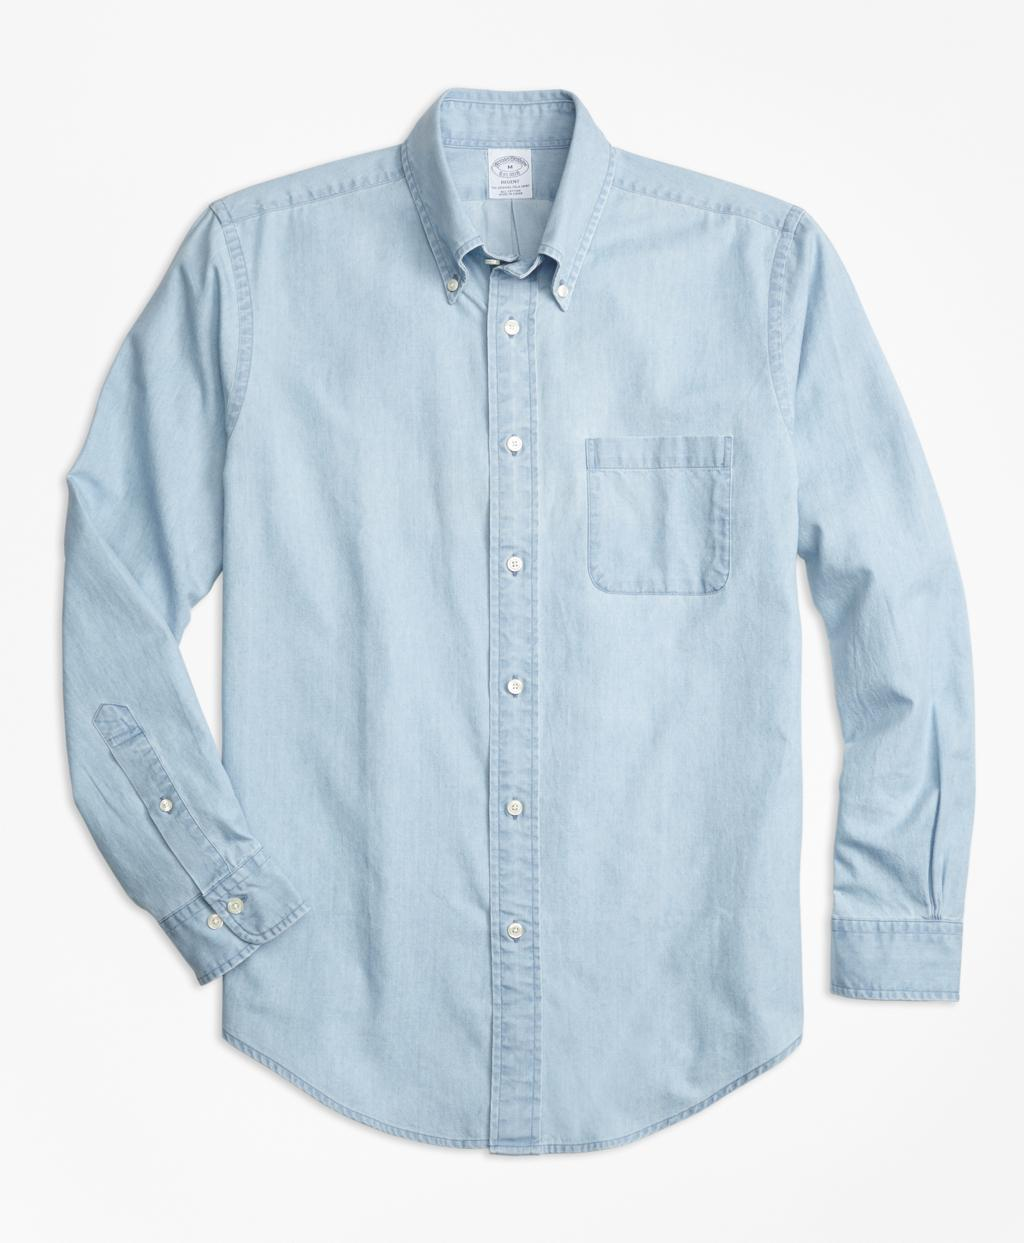 Lyst brooks brothers regent fit indigo chambray sport for Brooks brothers sports shirts